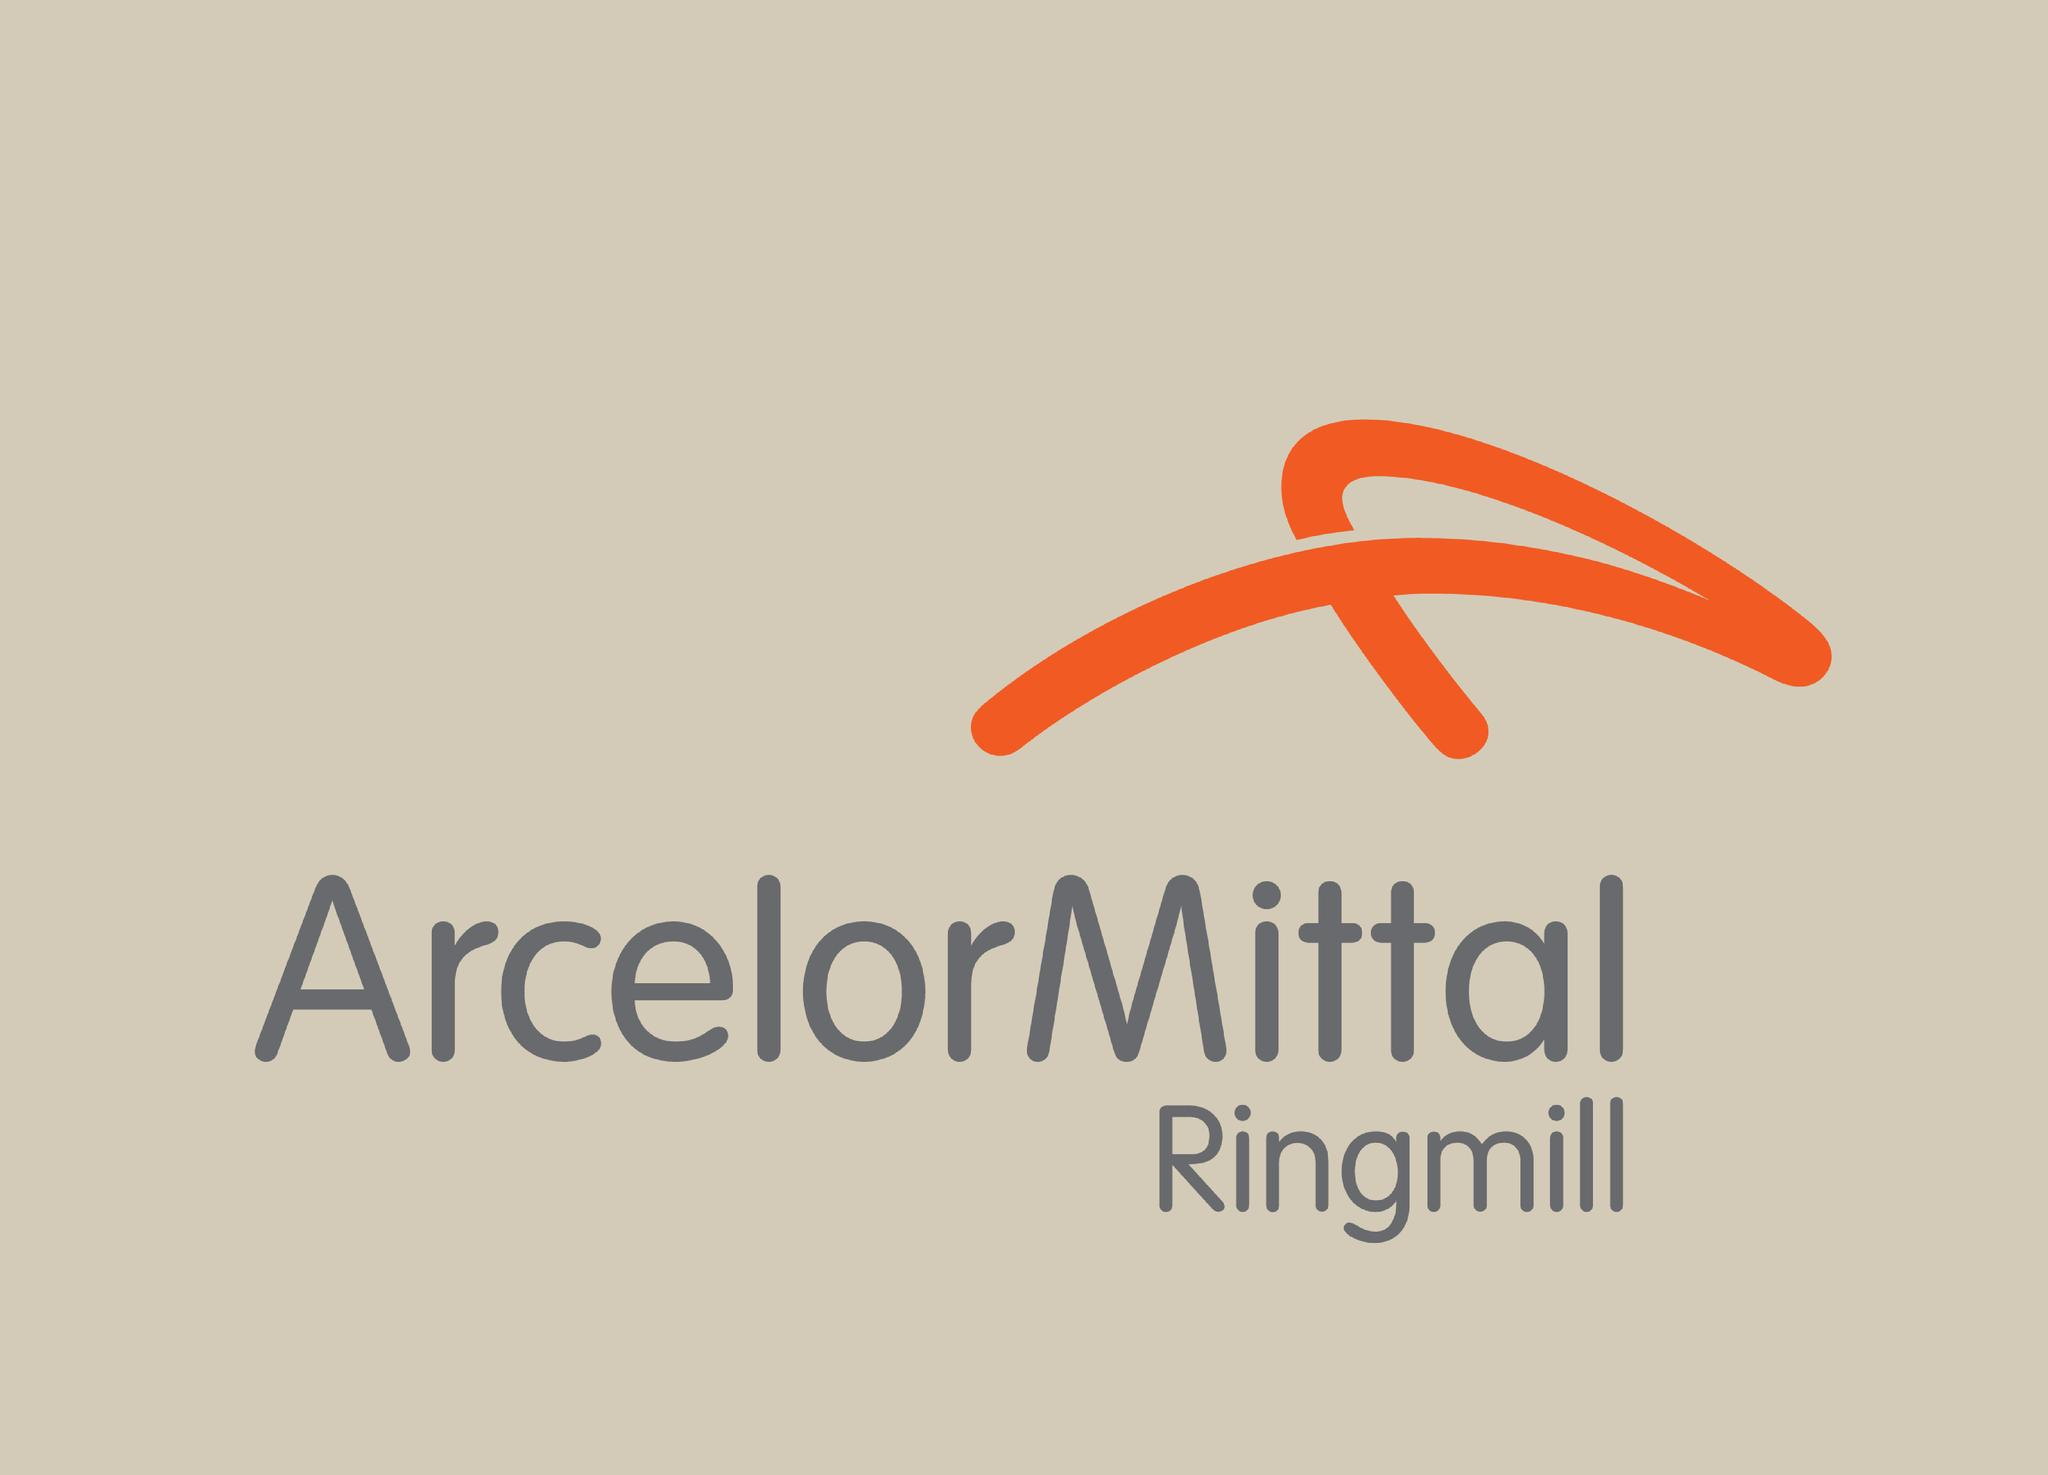 ArcelorMittal Ringmill S.A.